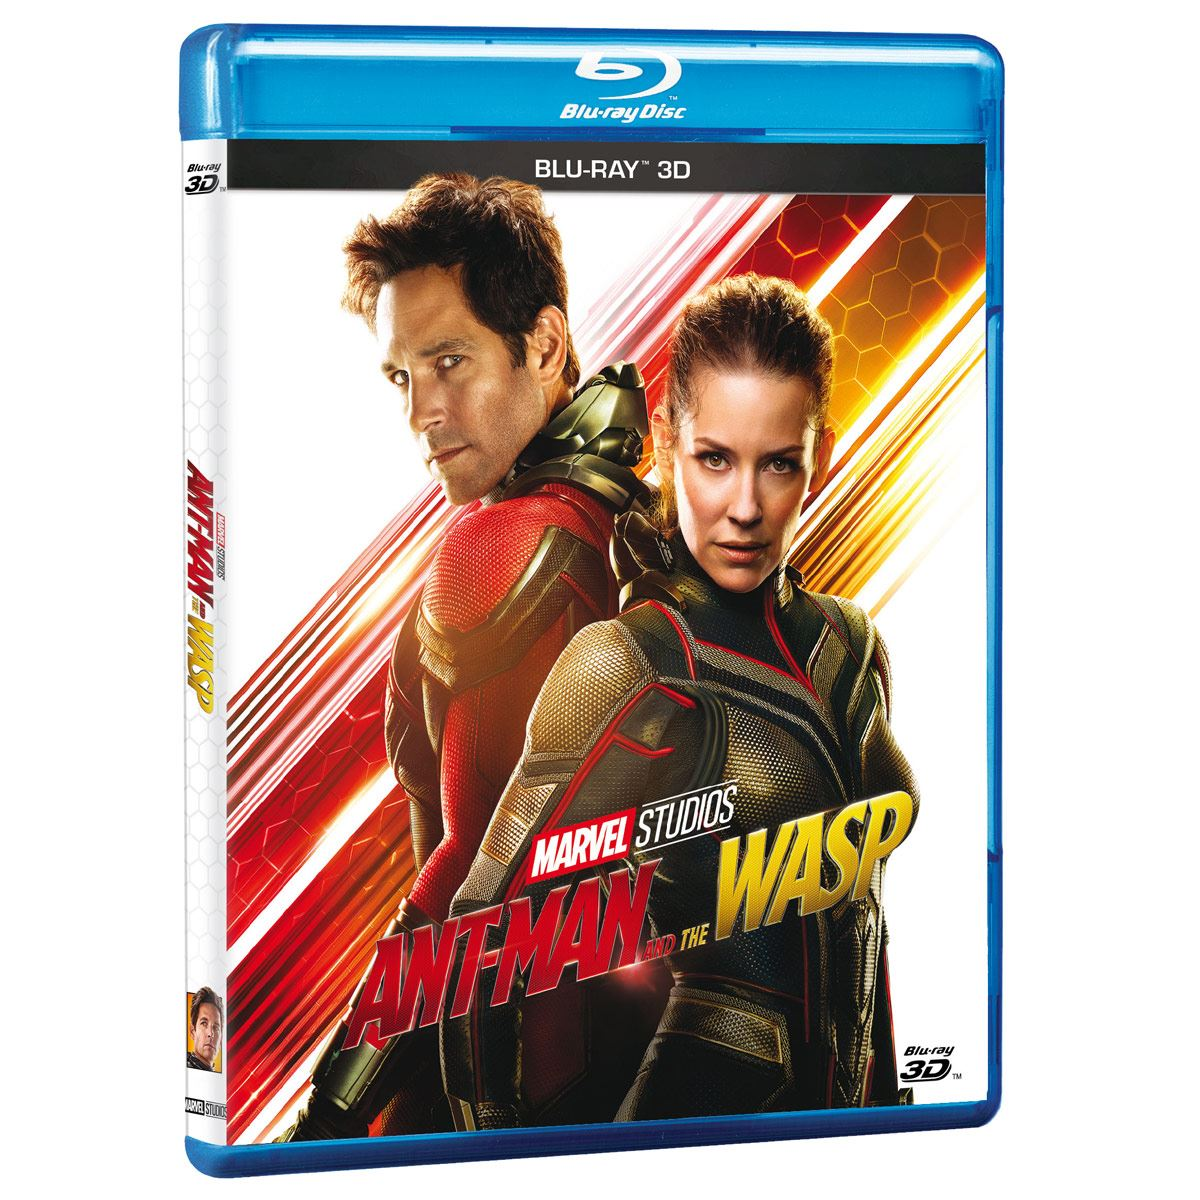 BR 3D Antman and the Wasp